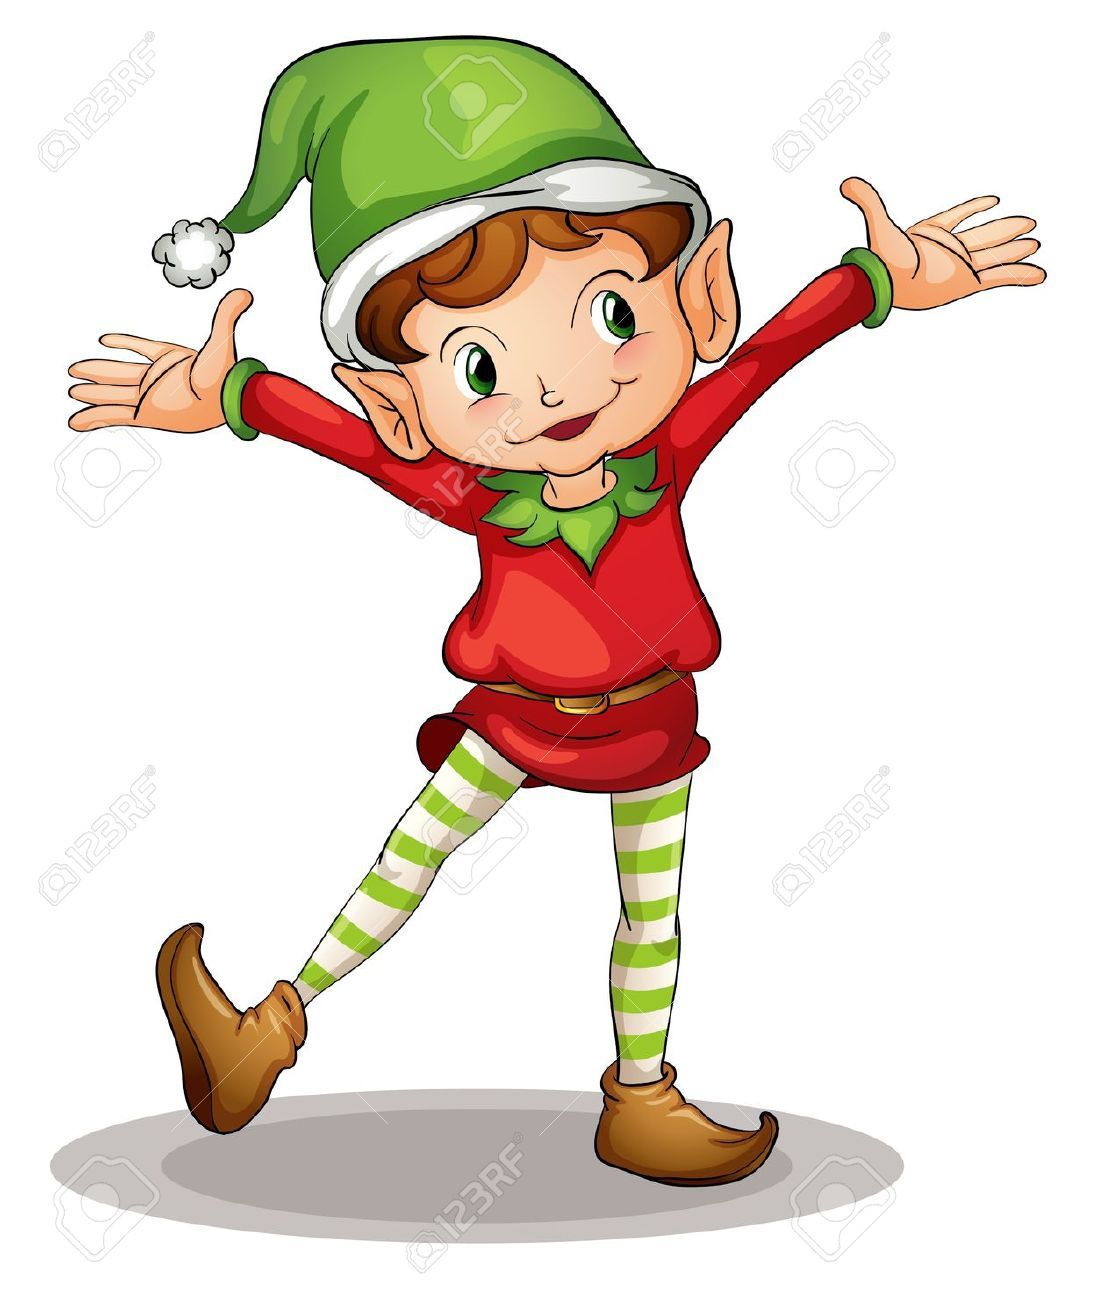 small resolution of illustration of a christmas elf royalty free cliparts vectors and stock illustration pic 13930683